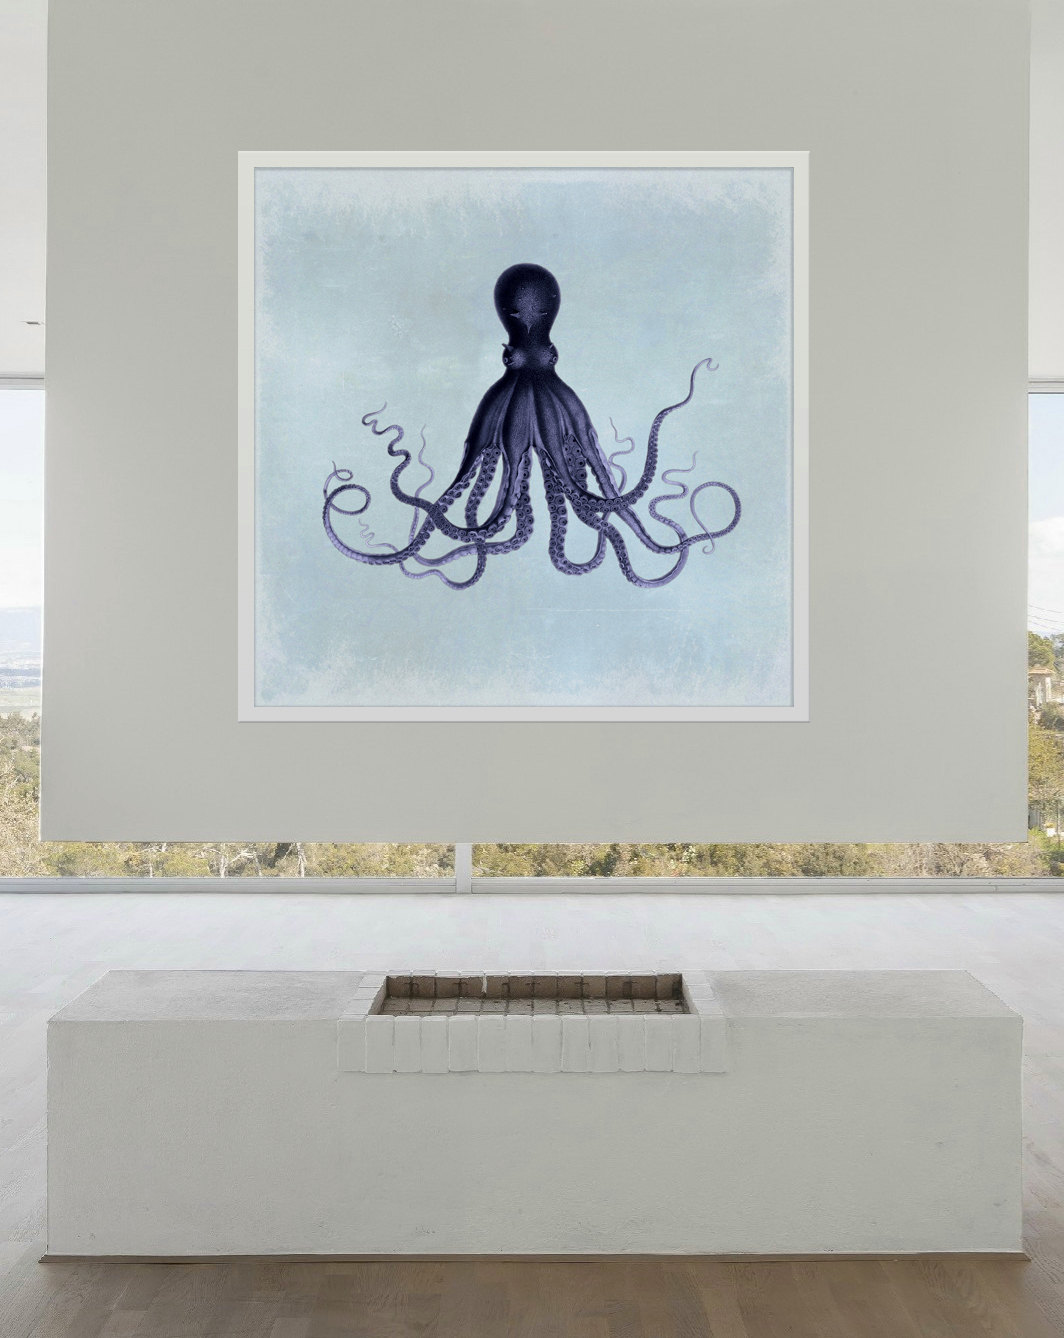 Lord bodner 39 s octopus 24 24 art print sea squid vintage for Vintage ocean decor